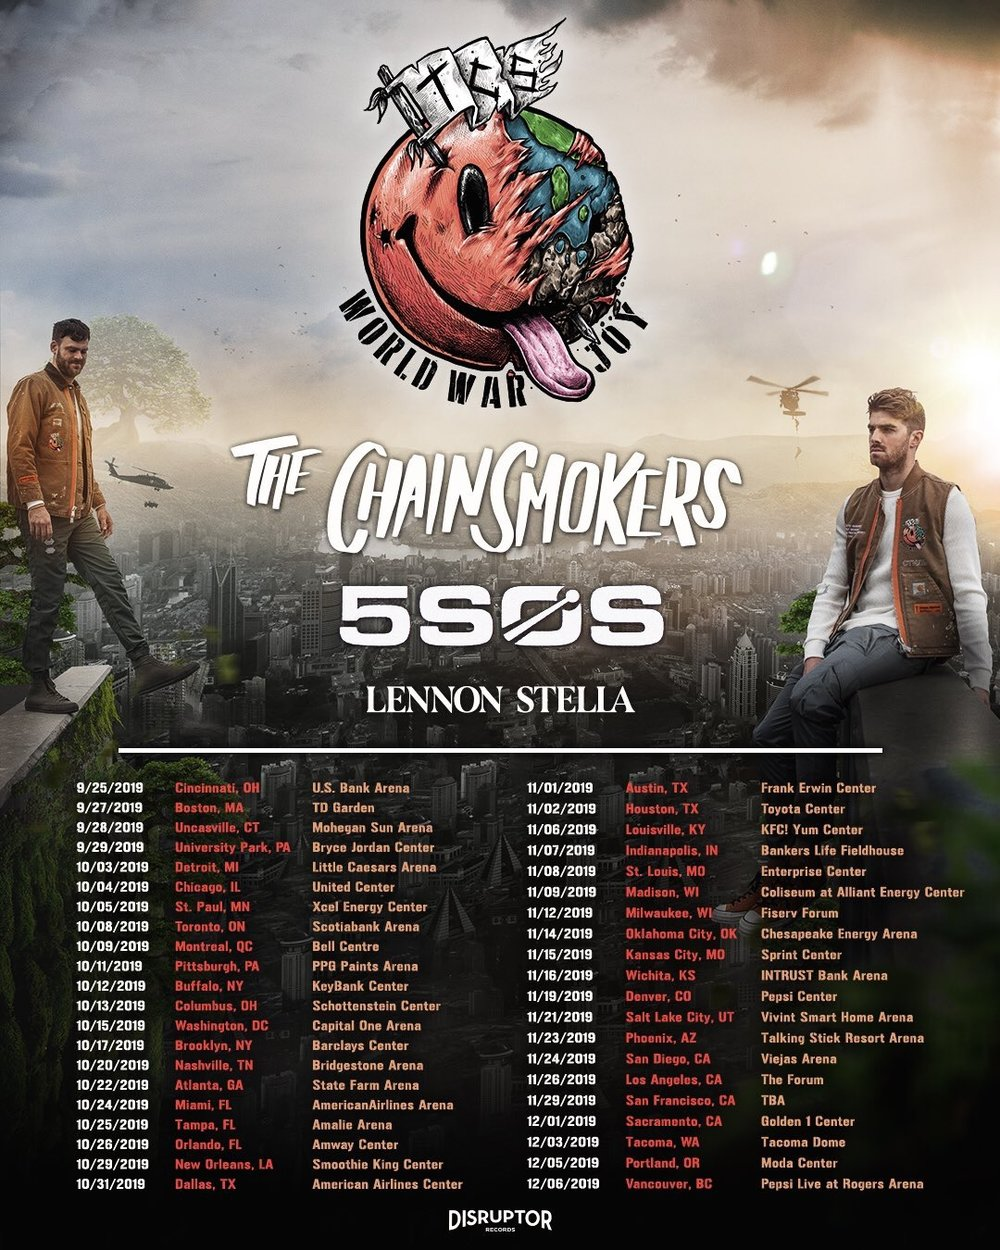 The Chainsmokers Tour